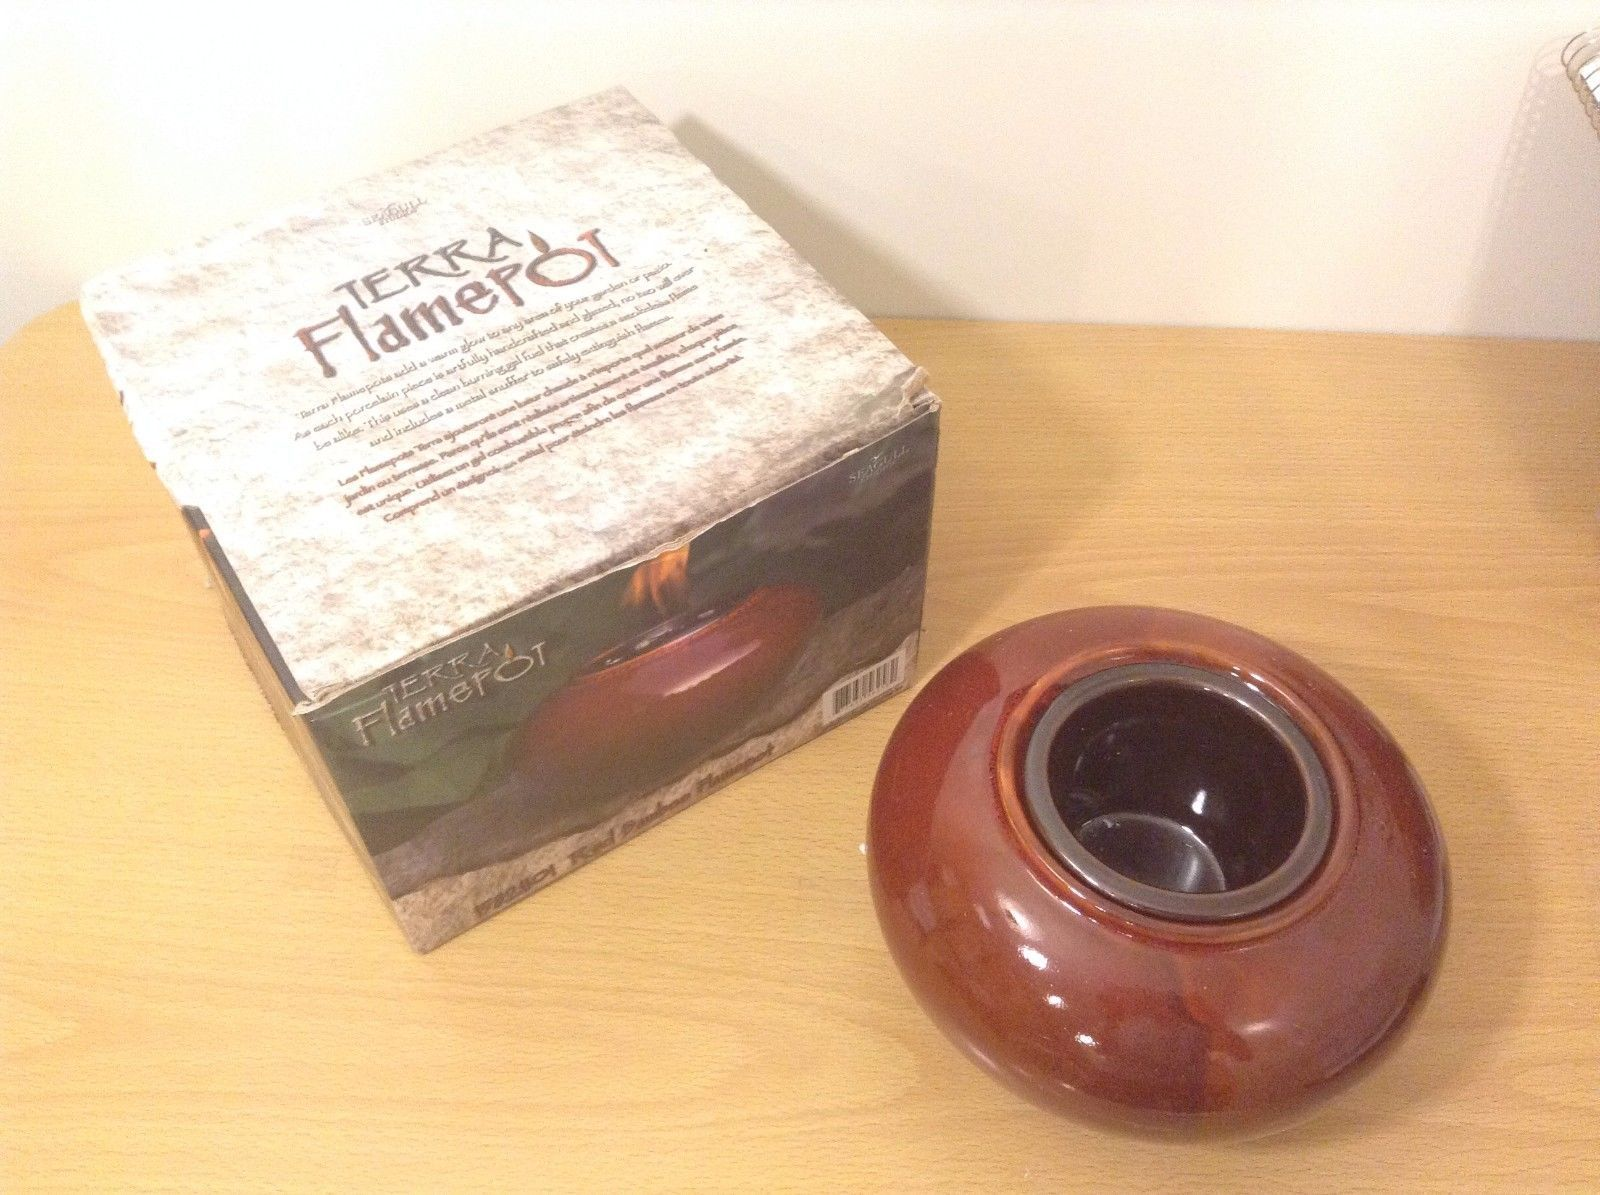 Terra Flamepot Red Bamboo Handcrafted Porcelain New Fuel Gel